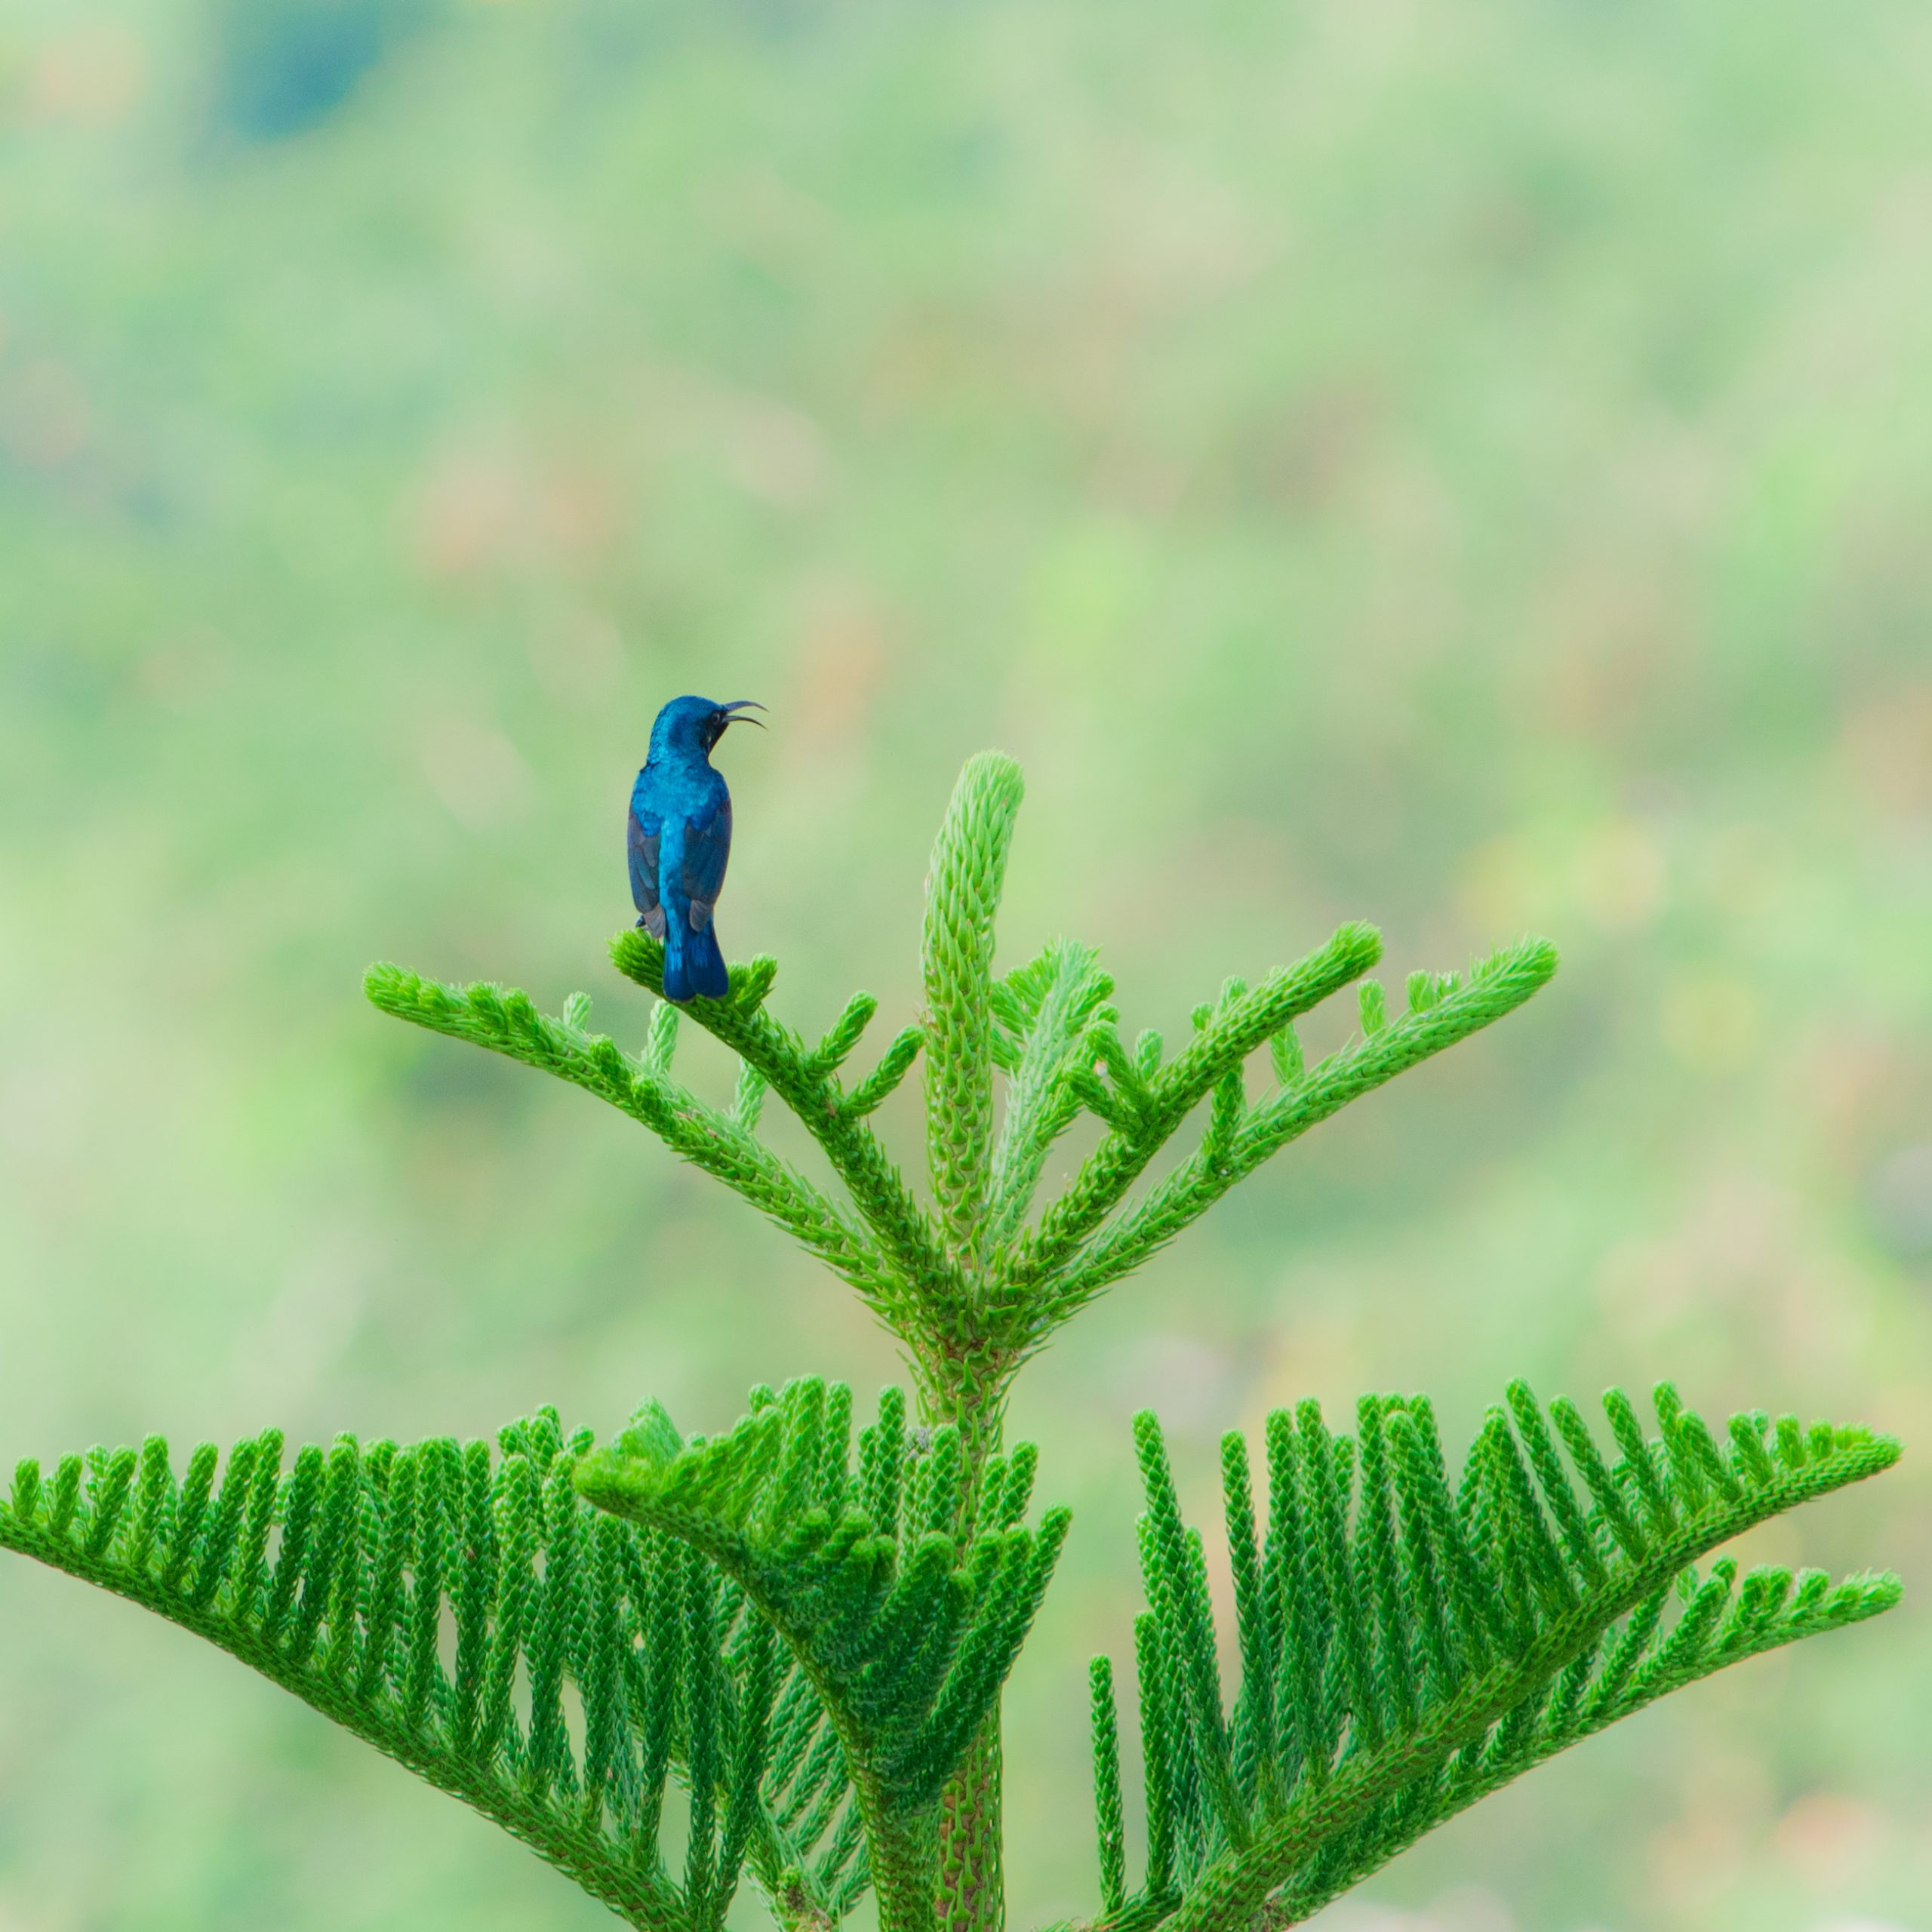 Purple Sunbird on a green plant